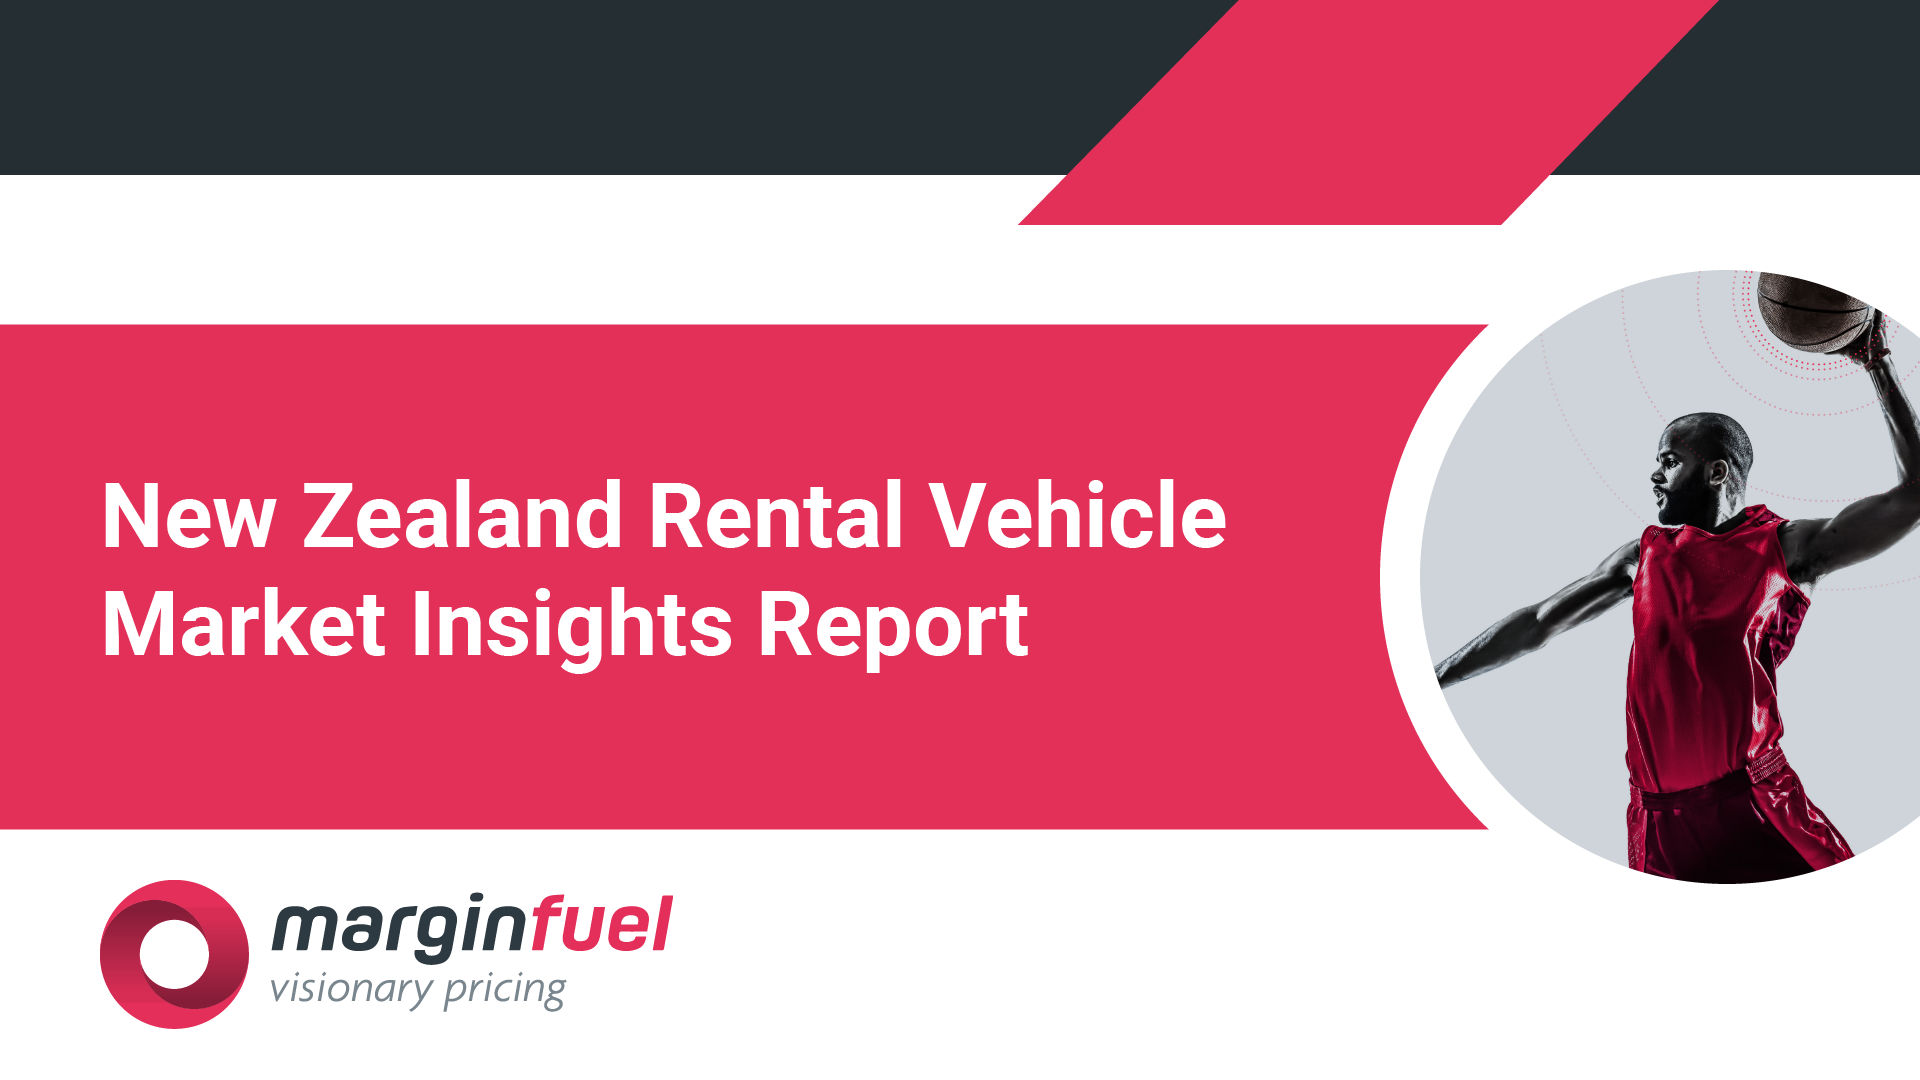 New Zealand Rental Vehicle Market Insights Report - February 2019